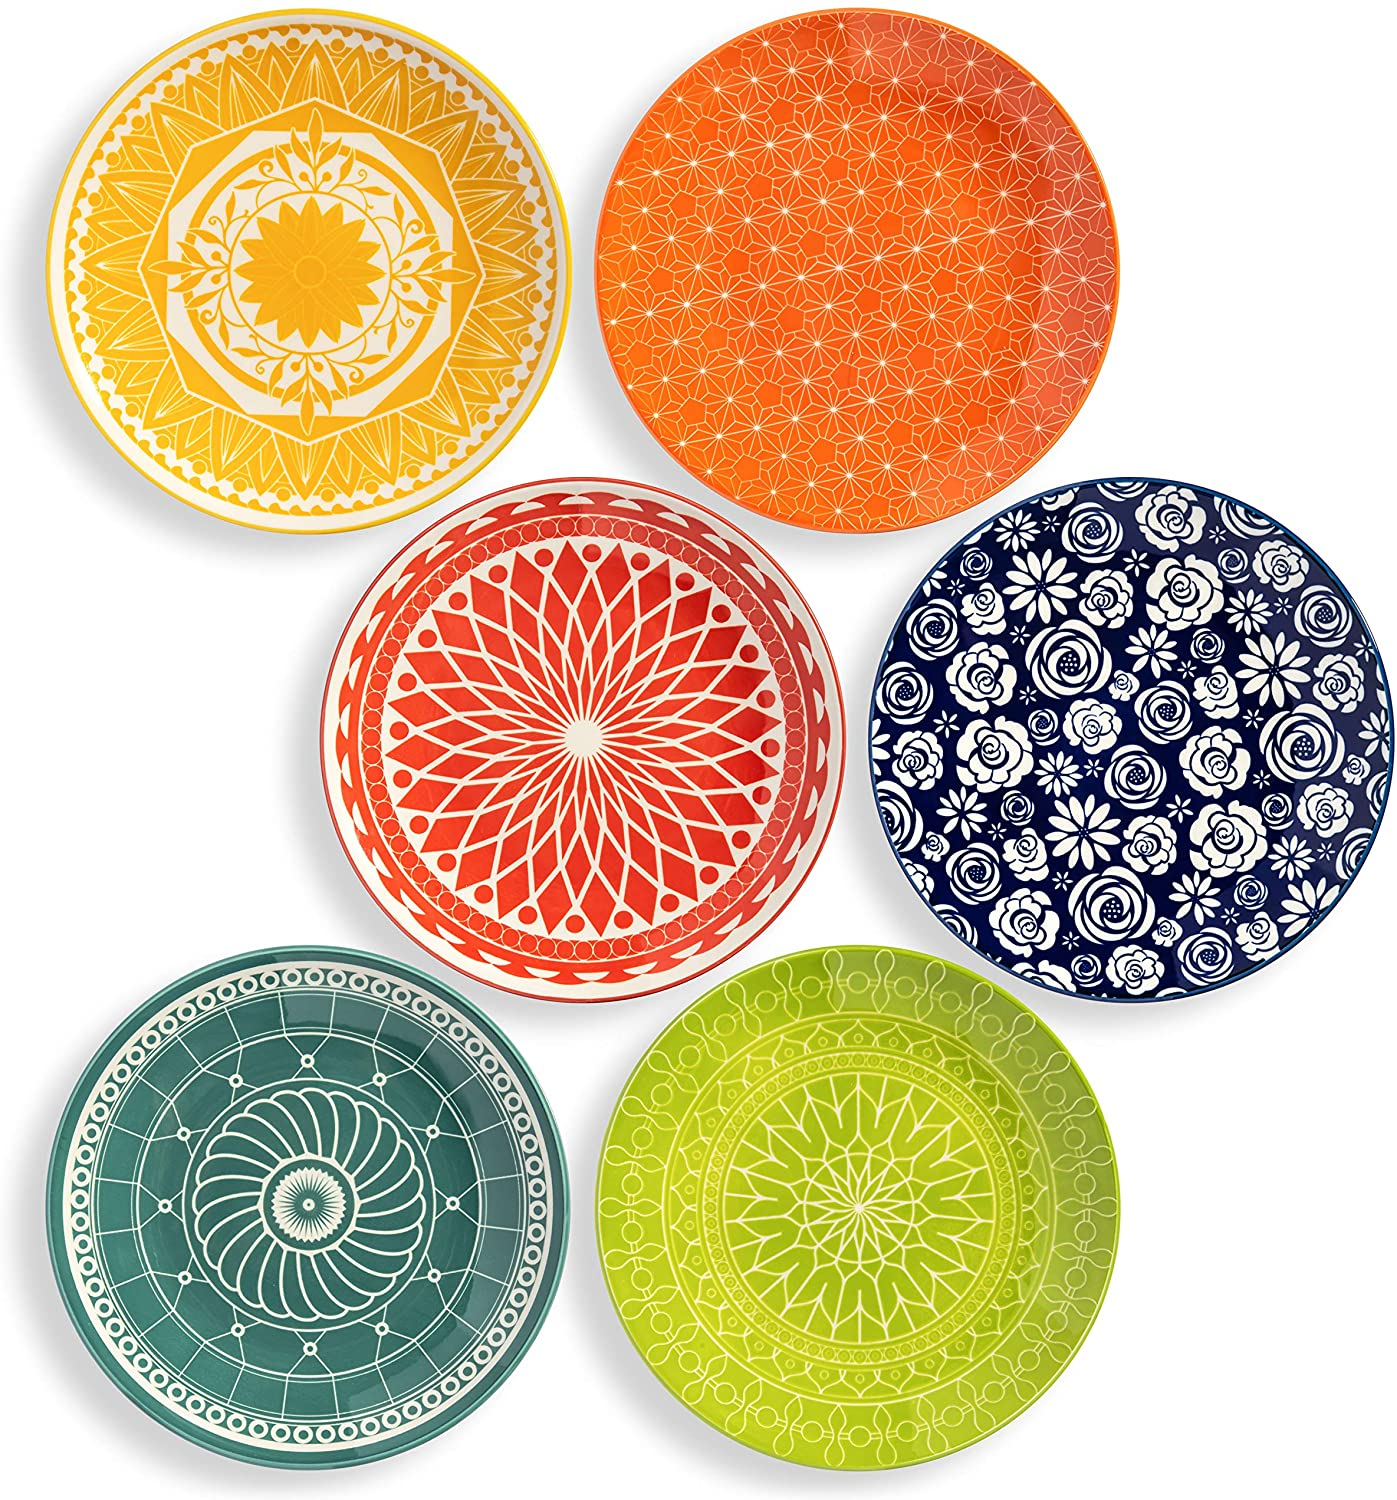 Annovero Salad/Luncheon Plates, Set of 6 Porcelain Plates